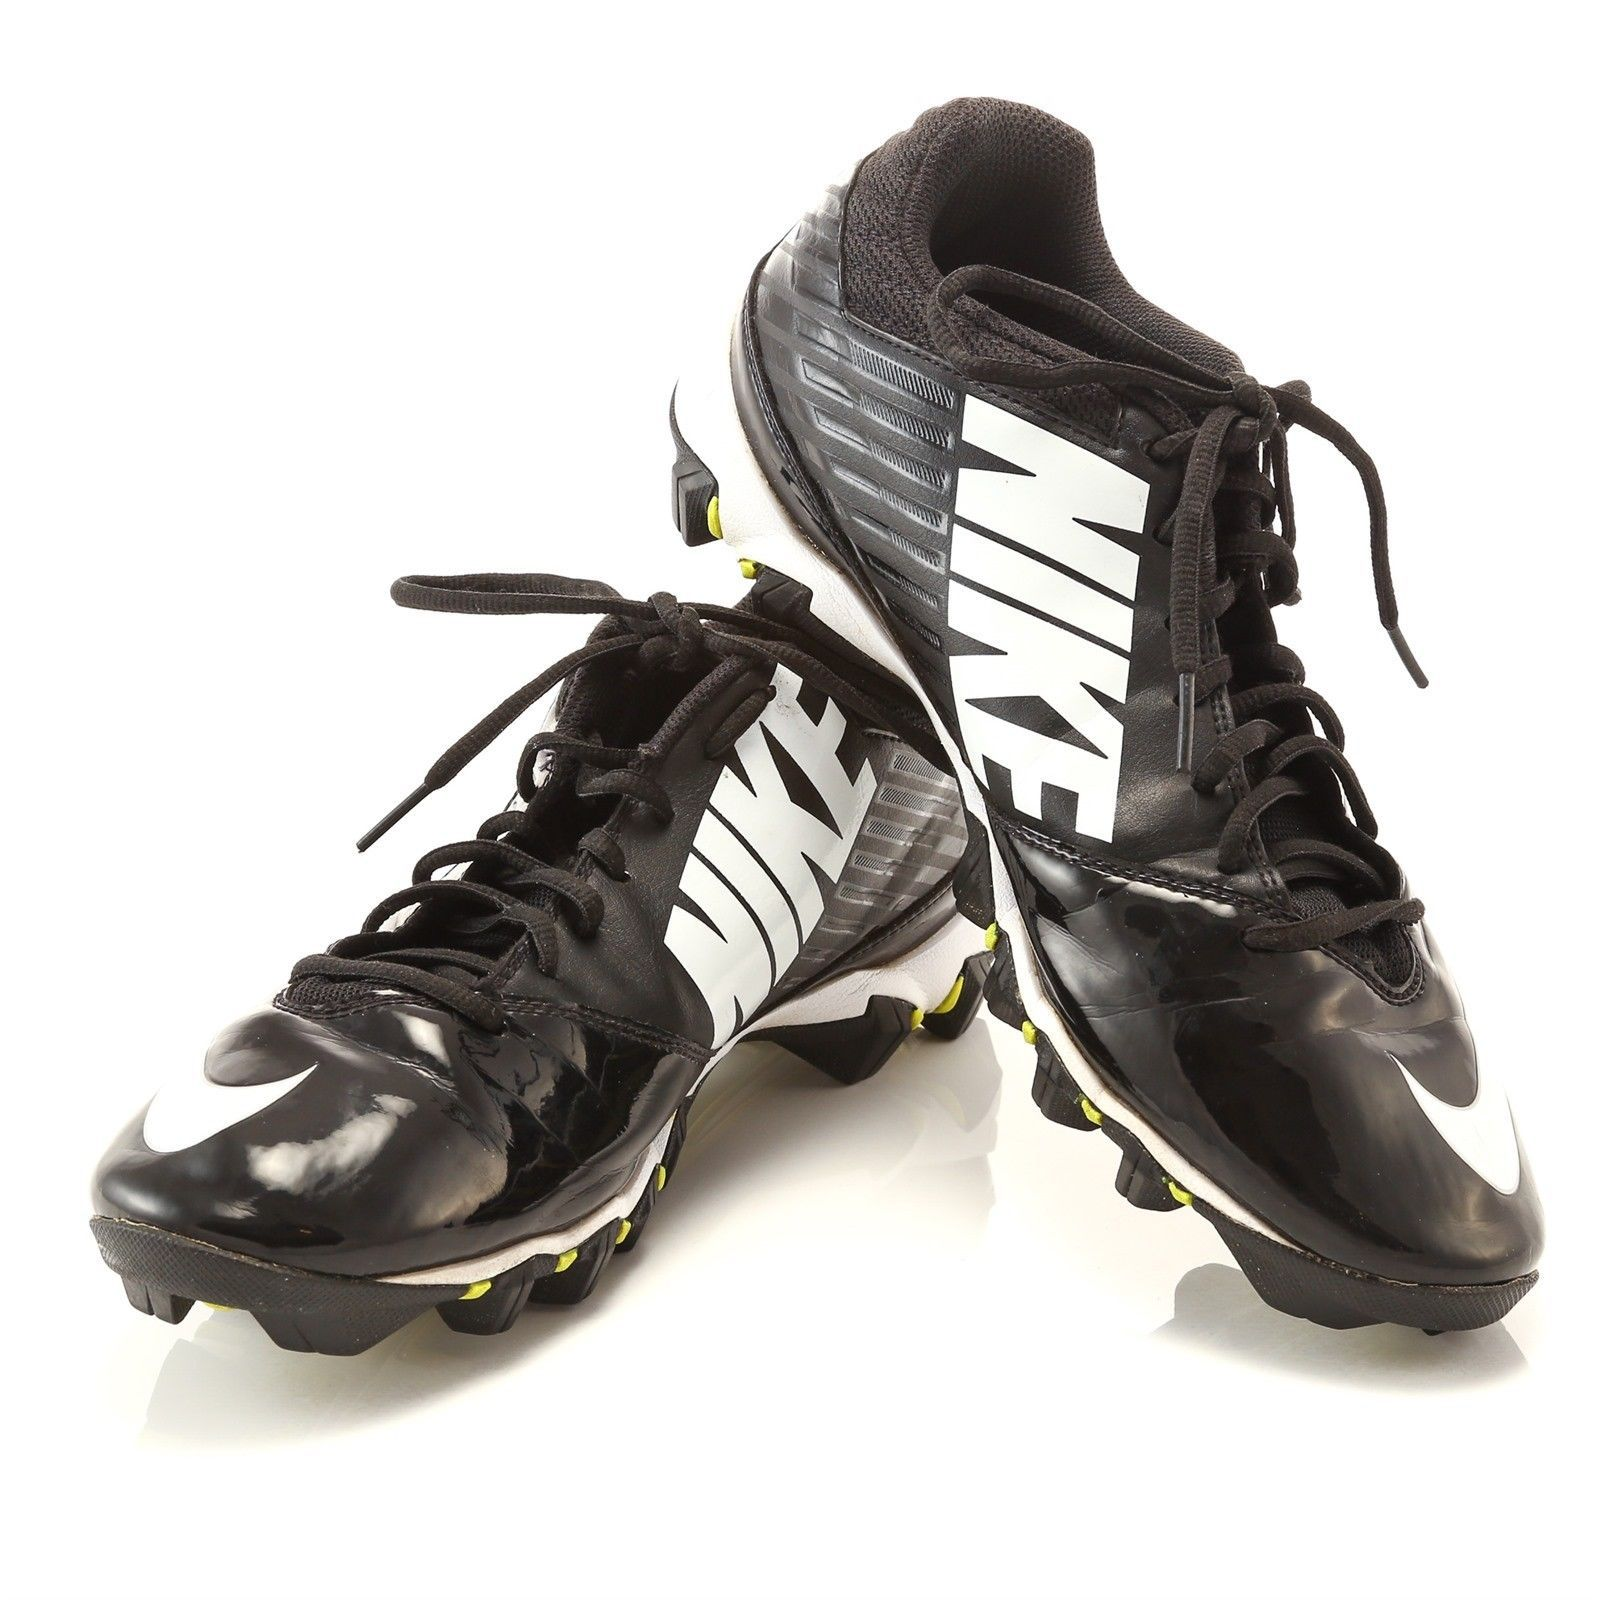 d10895334 Nike Vapor Shark Black White Football Cleats and 50 similar items. 57